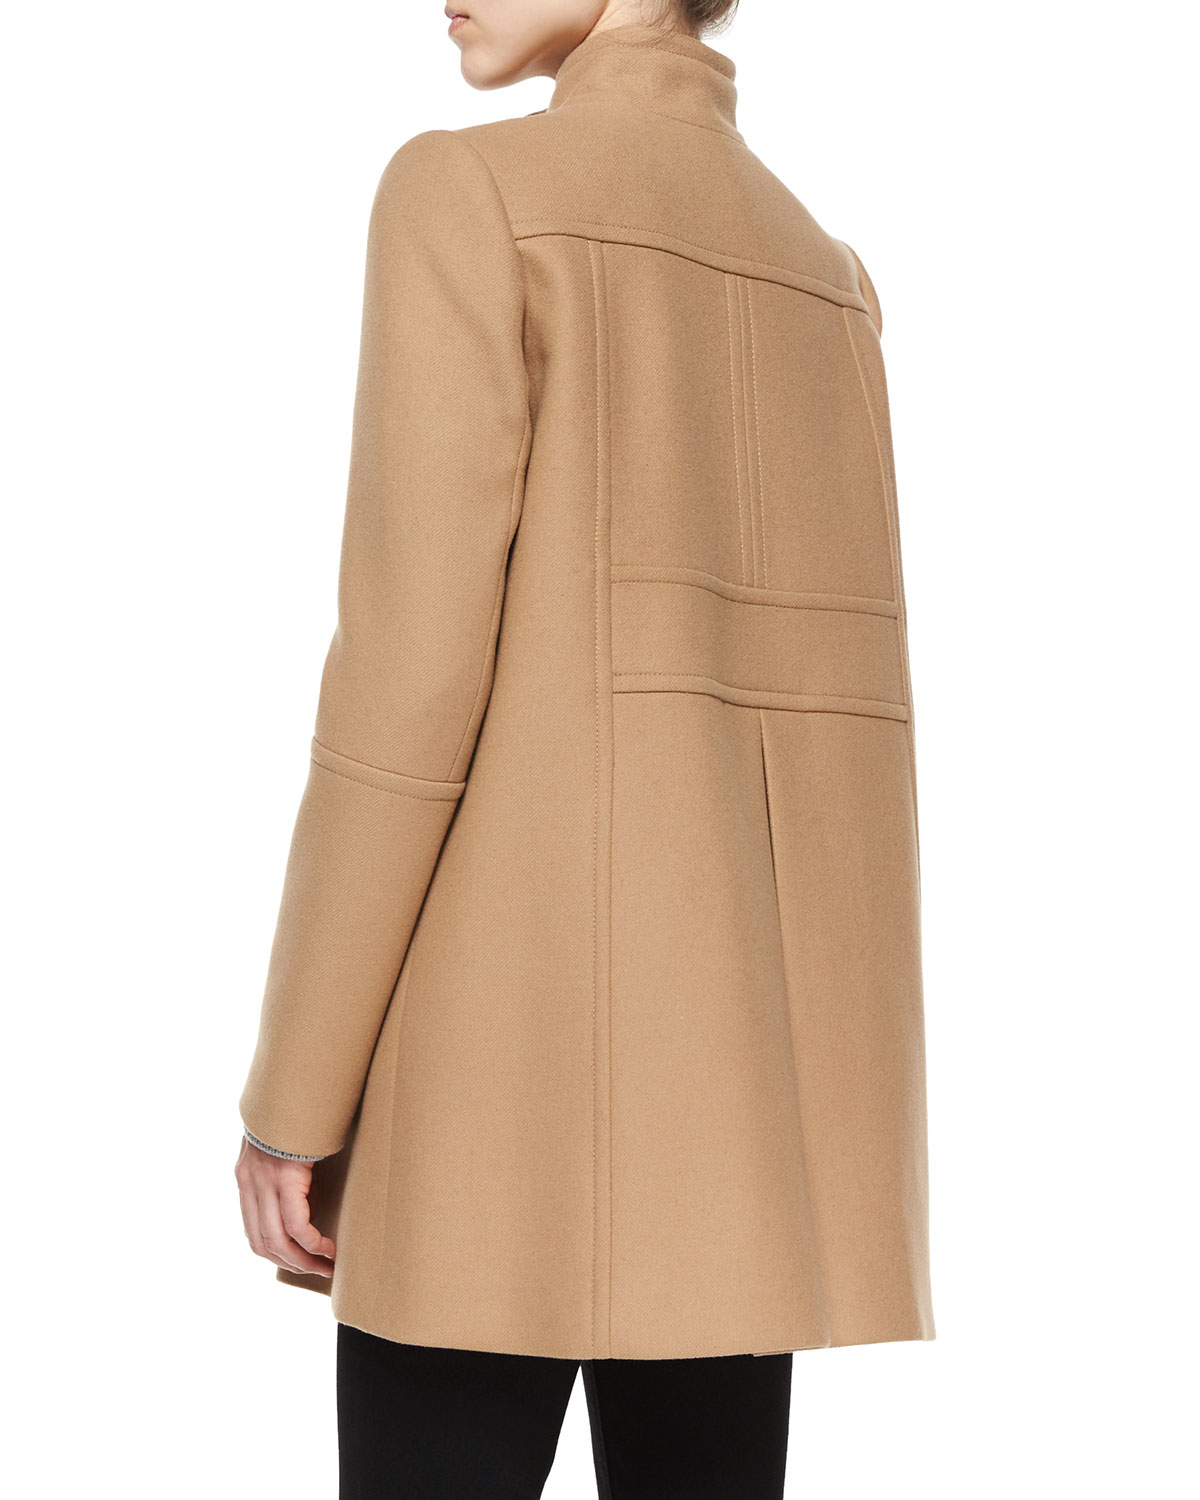 3f9ee823044d23 proenza-schouler-camel-stand-collar-3-button-swing-coat-beige-product-1-226953999-normal.jpeg